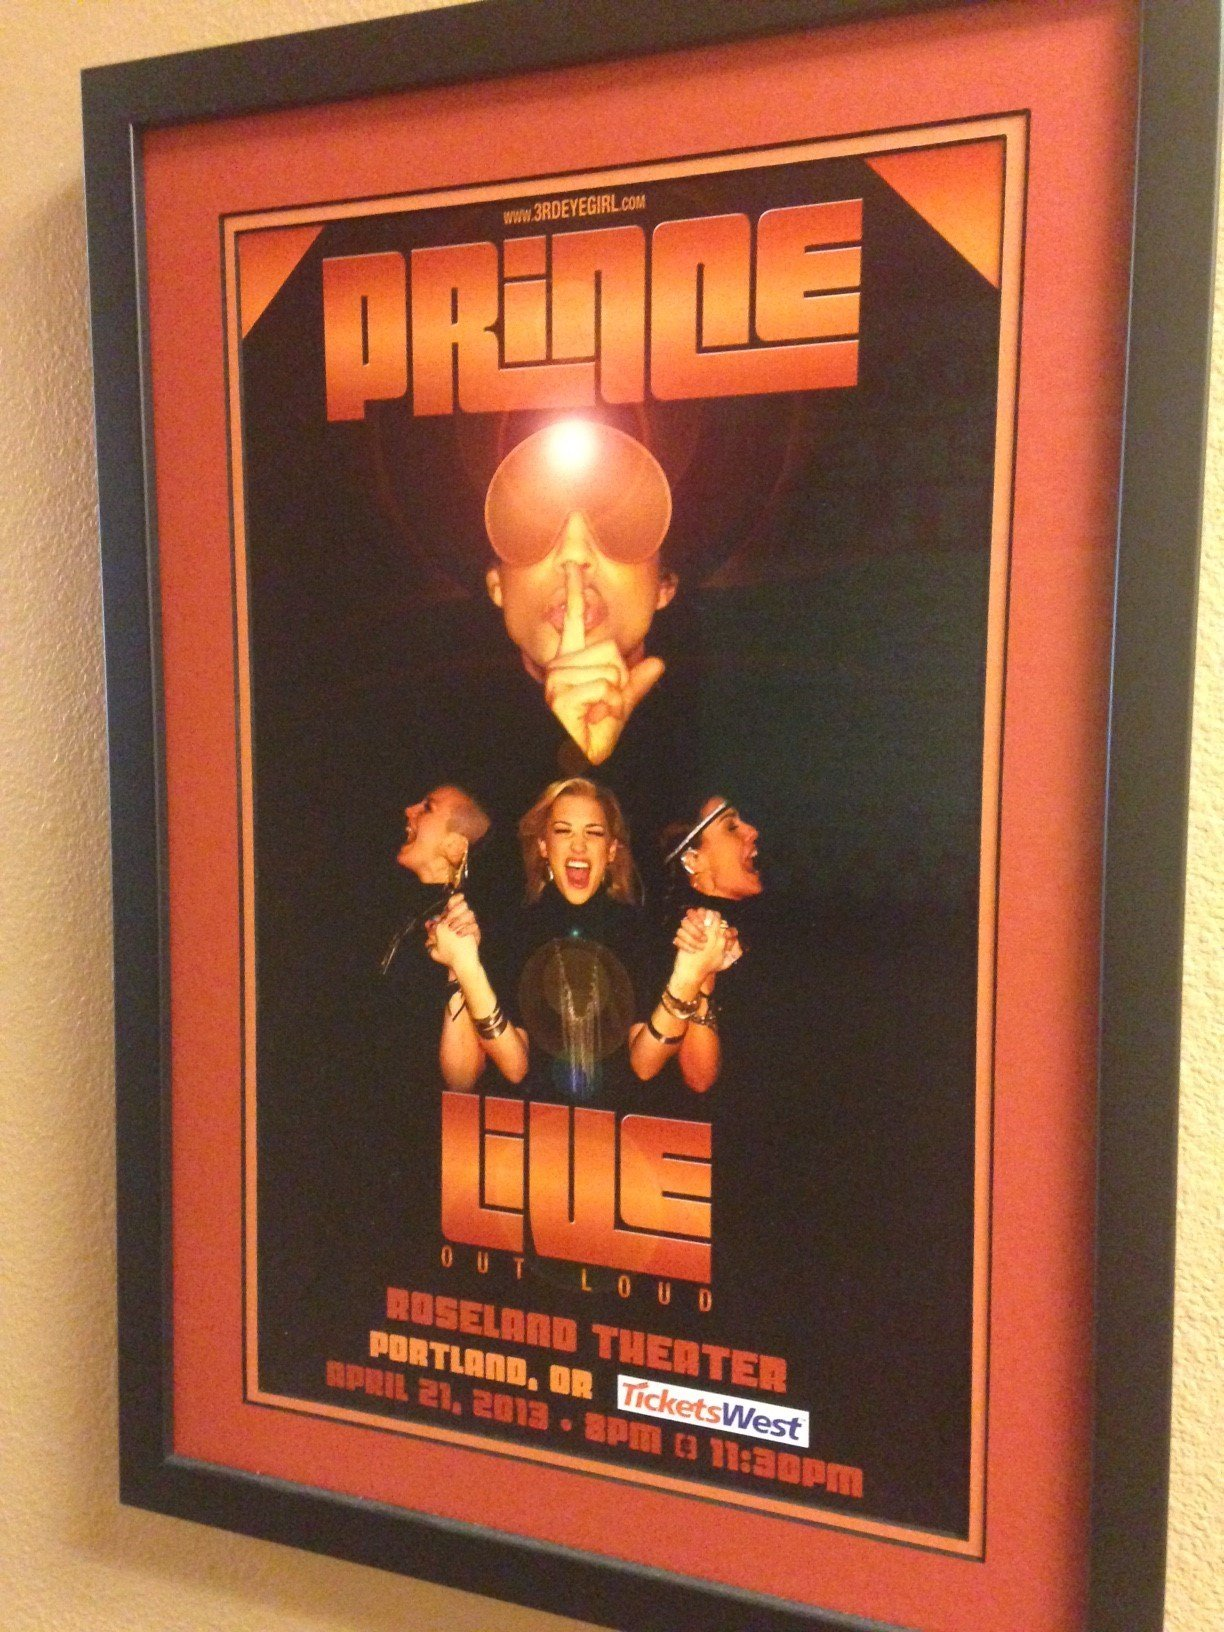 A poster from Prince's 2013 show, hanging at the Roseland Theater.